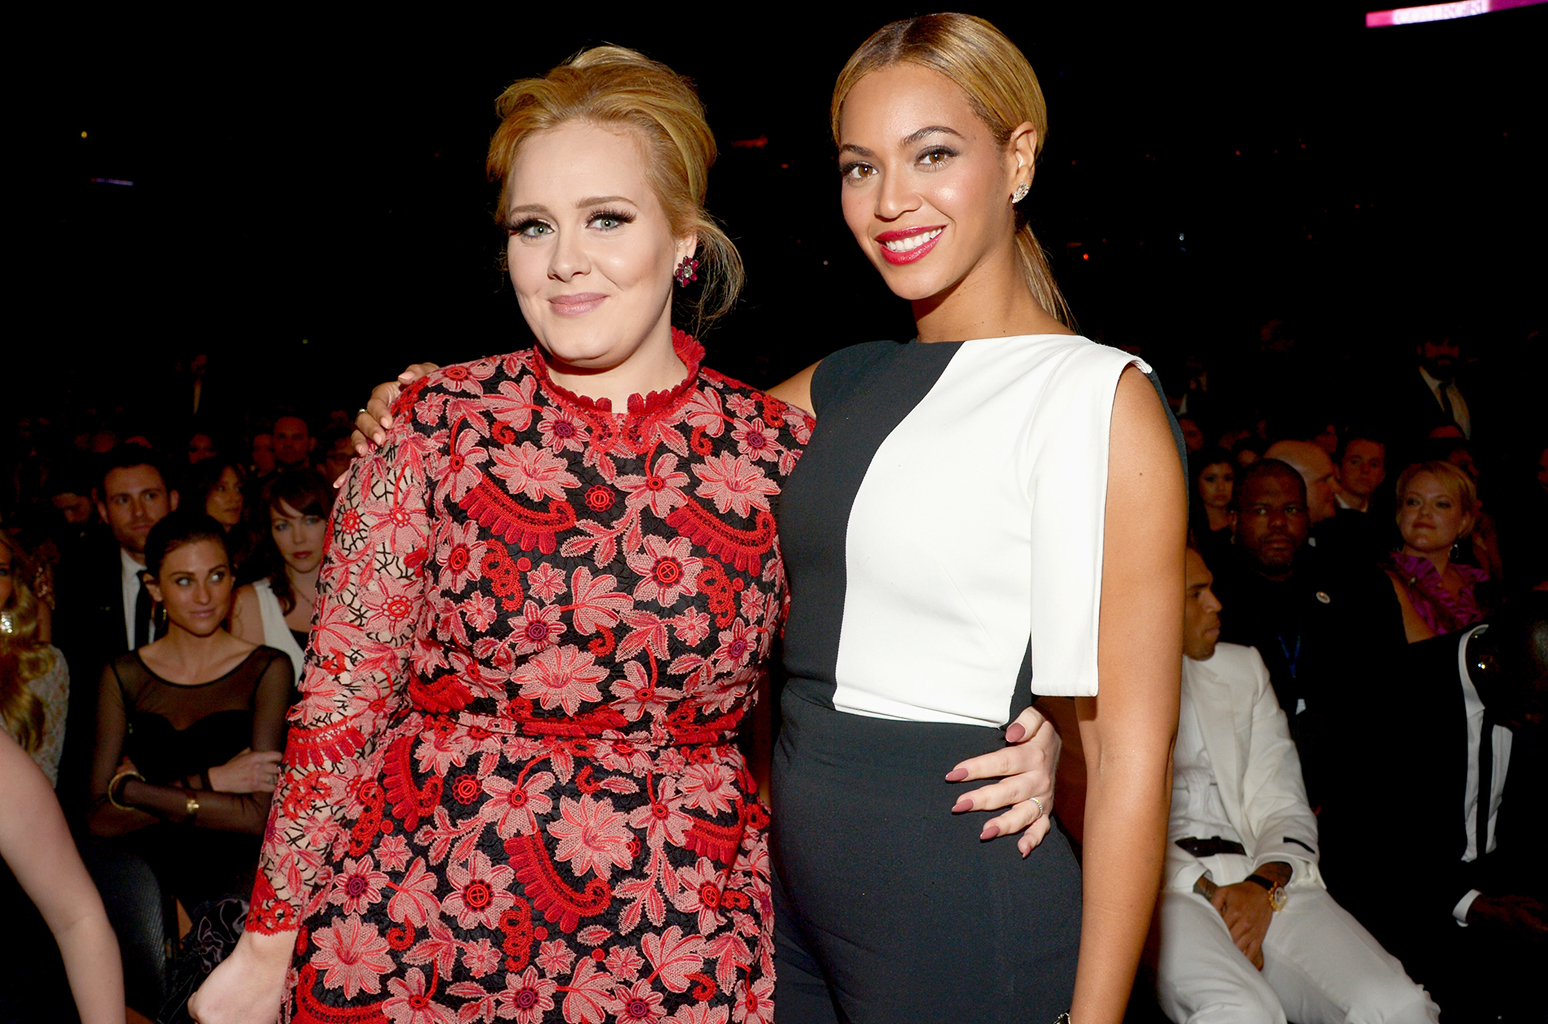 LOS ANGELES, CA - FEBRUARY 10: Adele and Beyonce attend the 55th Annual GRAMMY Awards at STAPLES Center on February 10, 2013 in Los Angeles, California.  (Photo by Lester Cohen/WireImage)